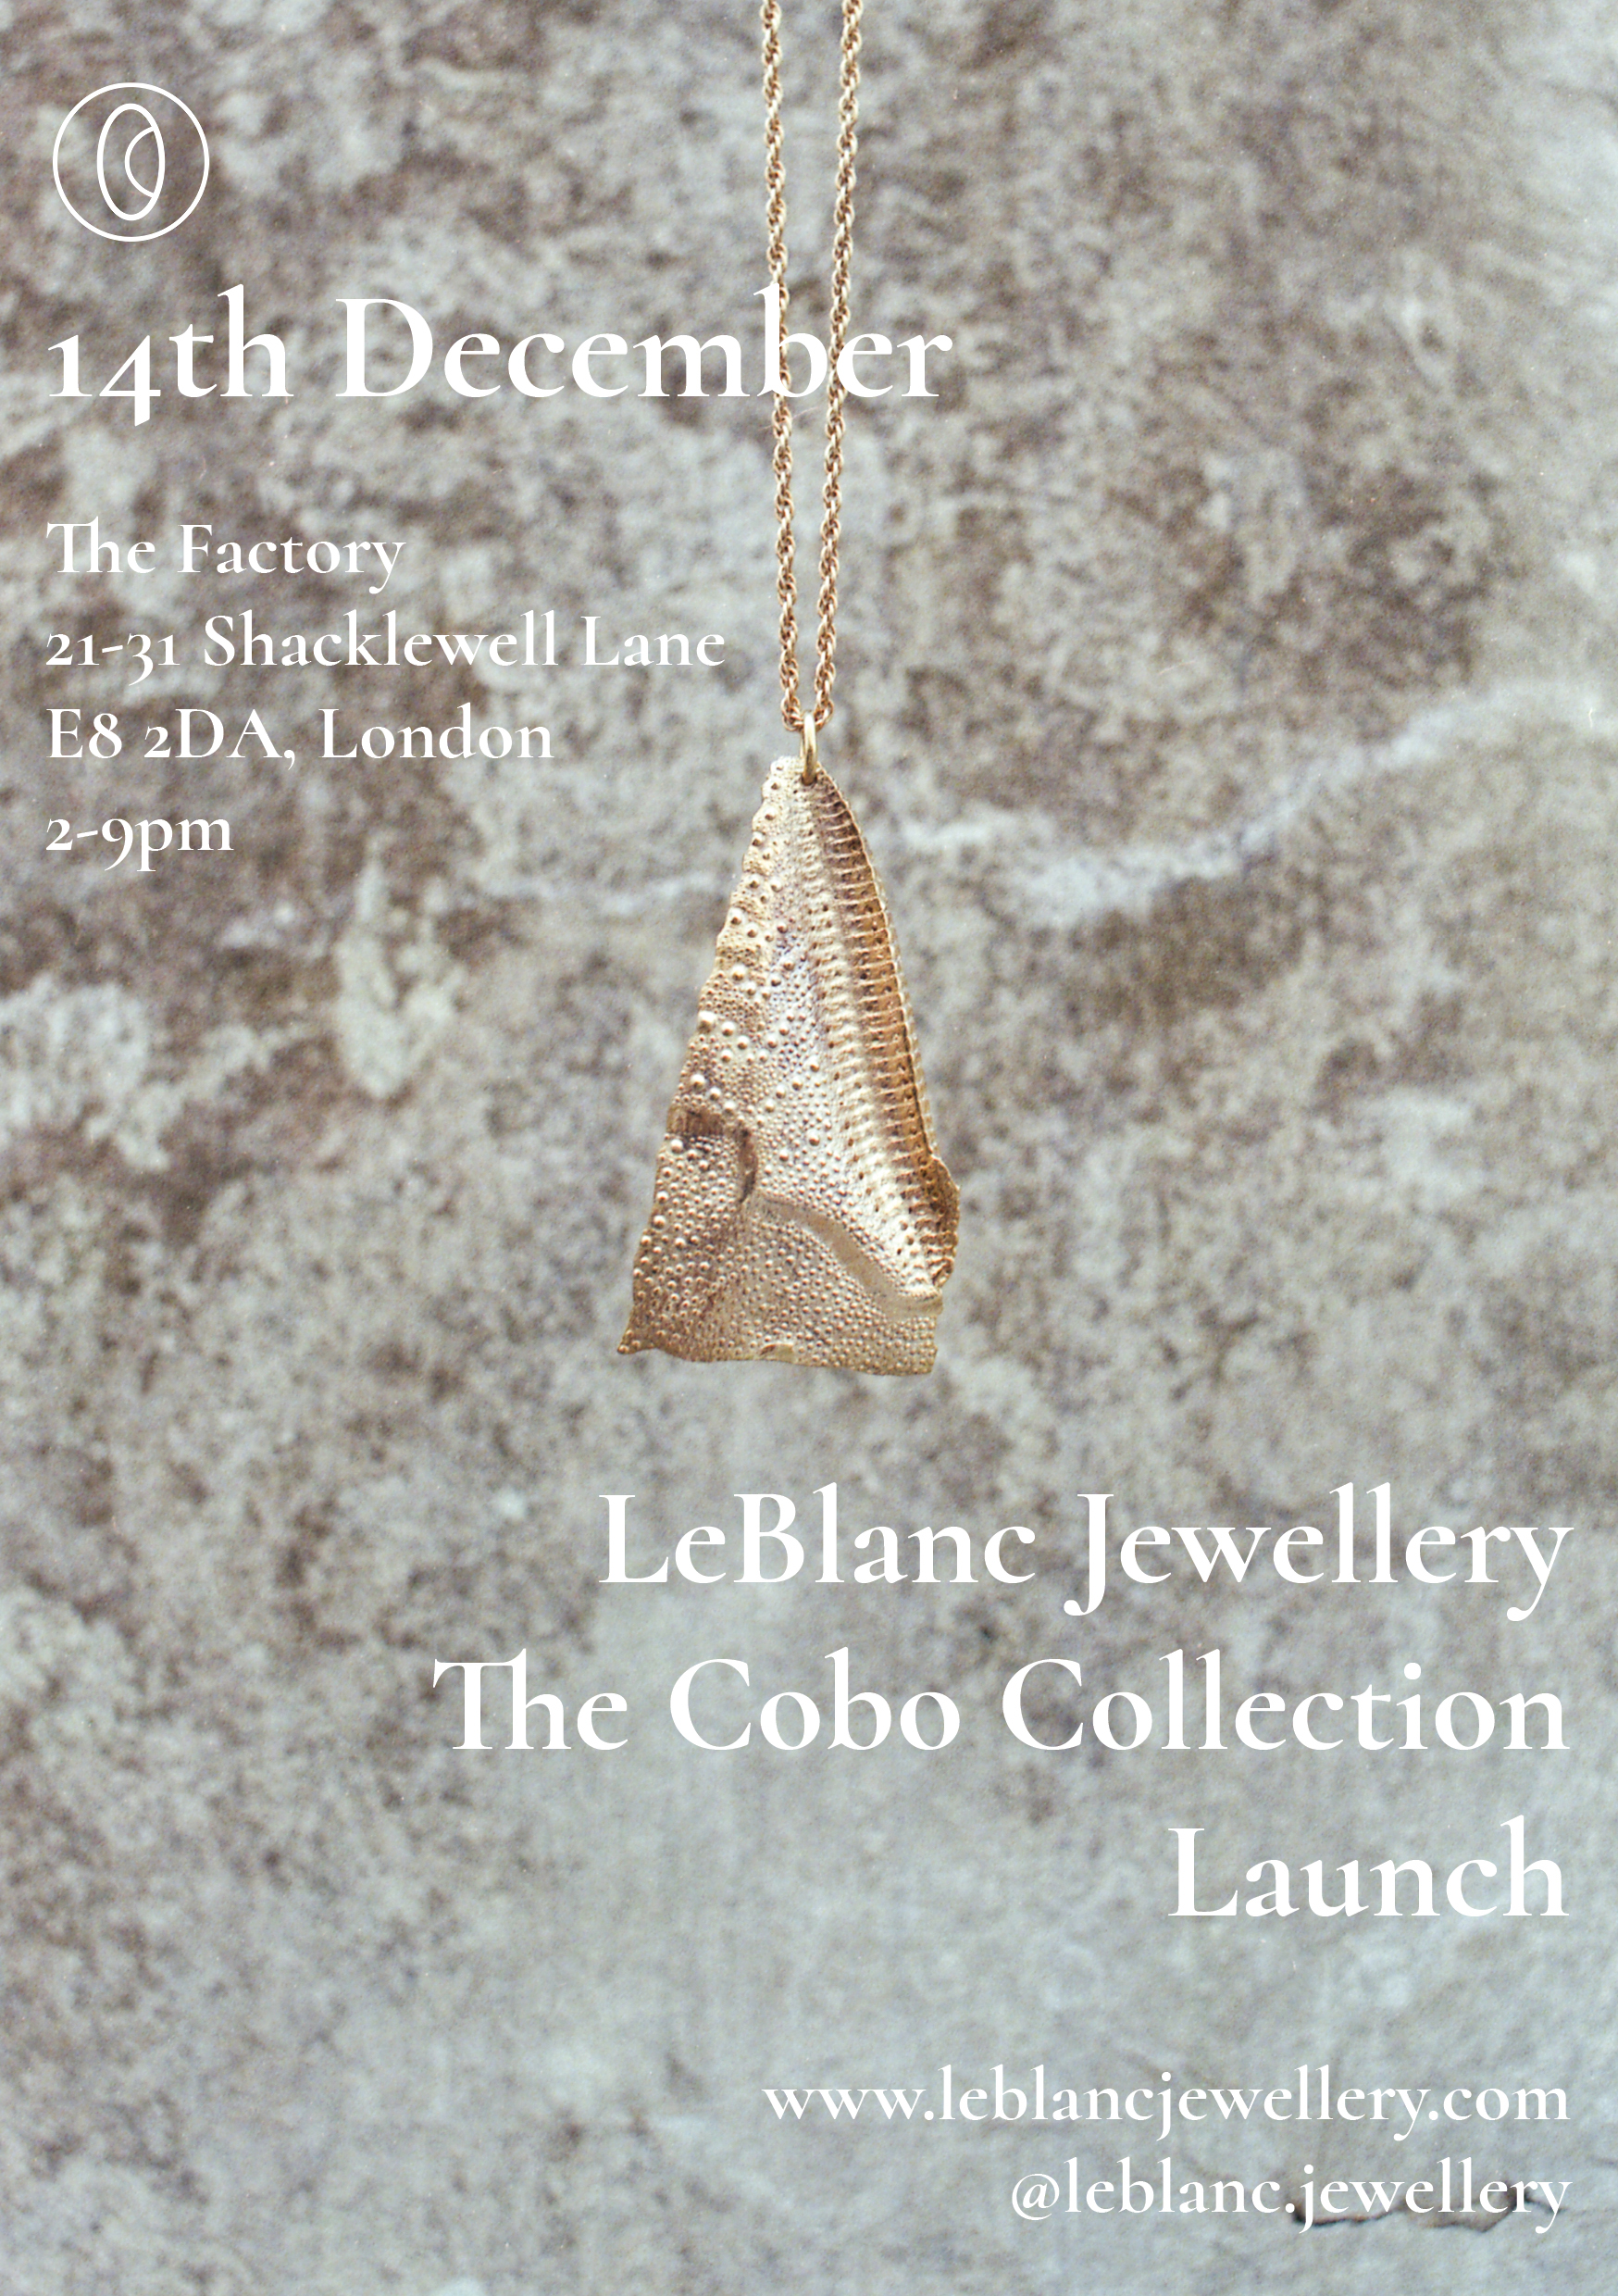 Cobo Launch Poster